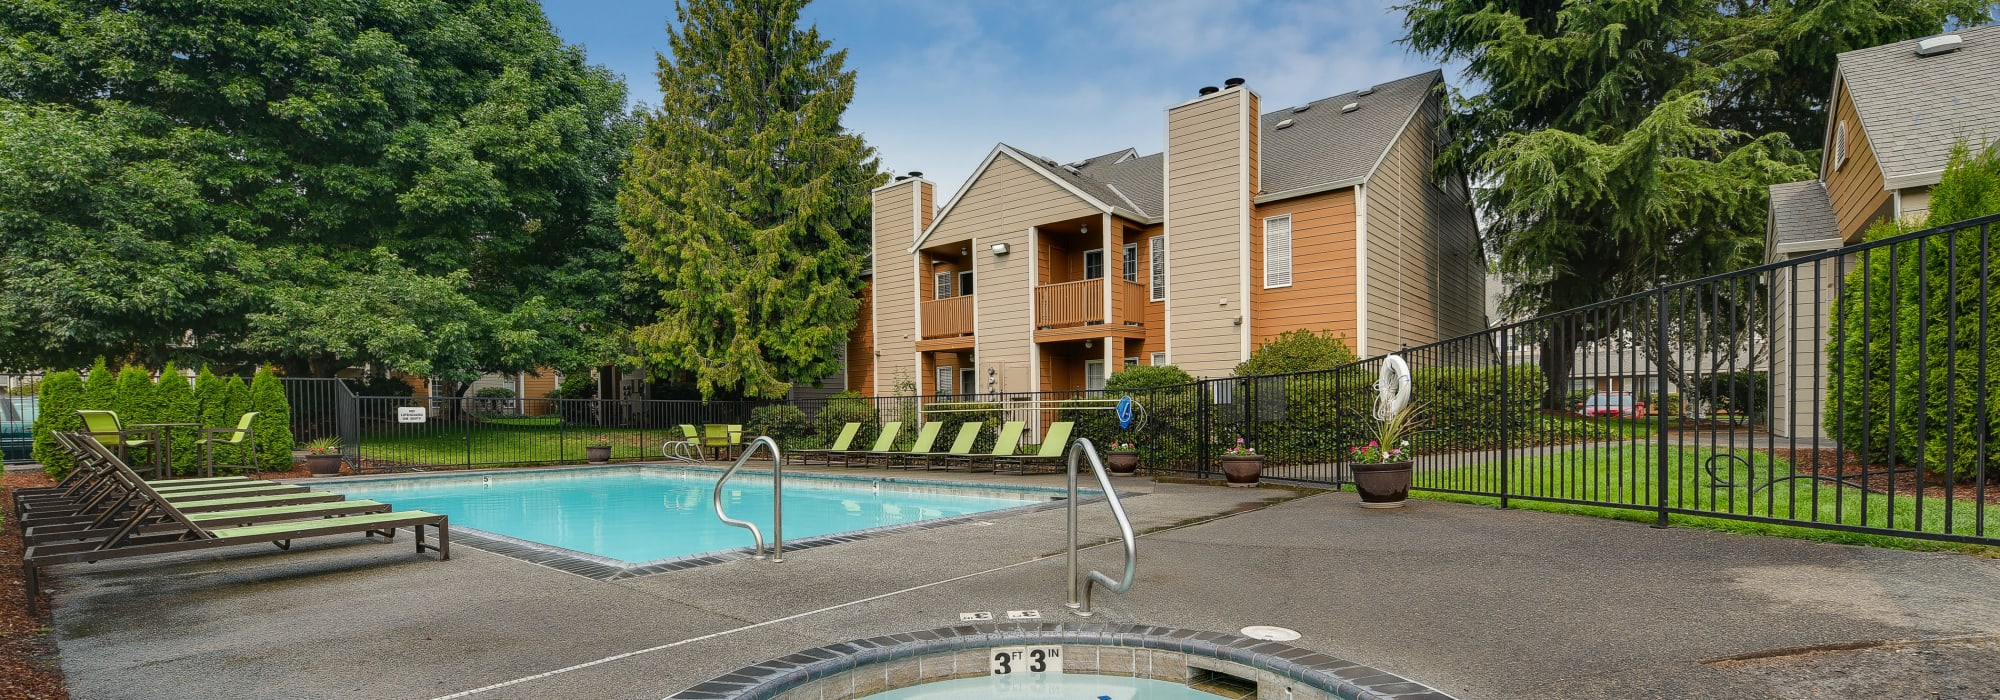 Pet friendly living at Carriage House Apartments in Vancouver, Washington